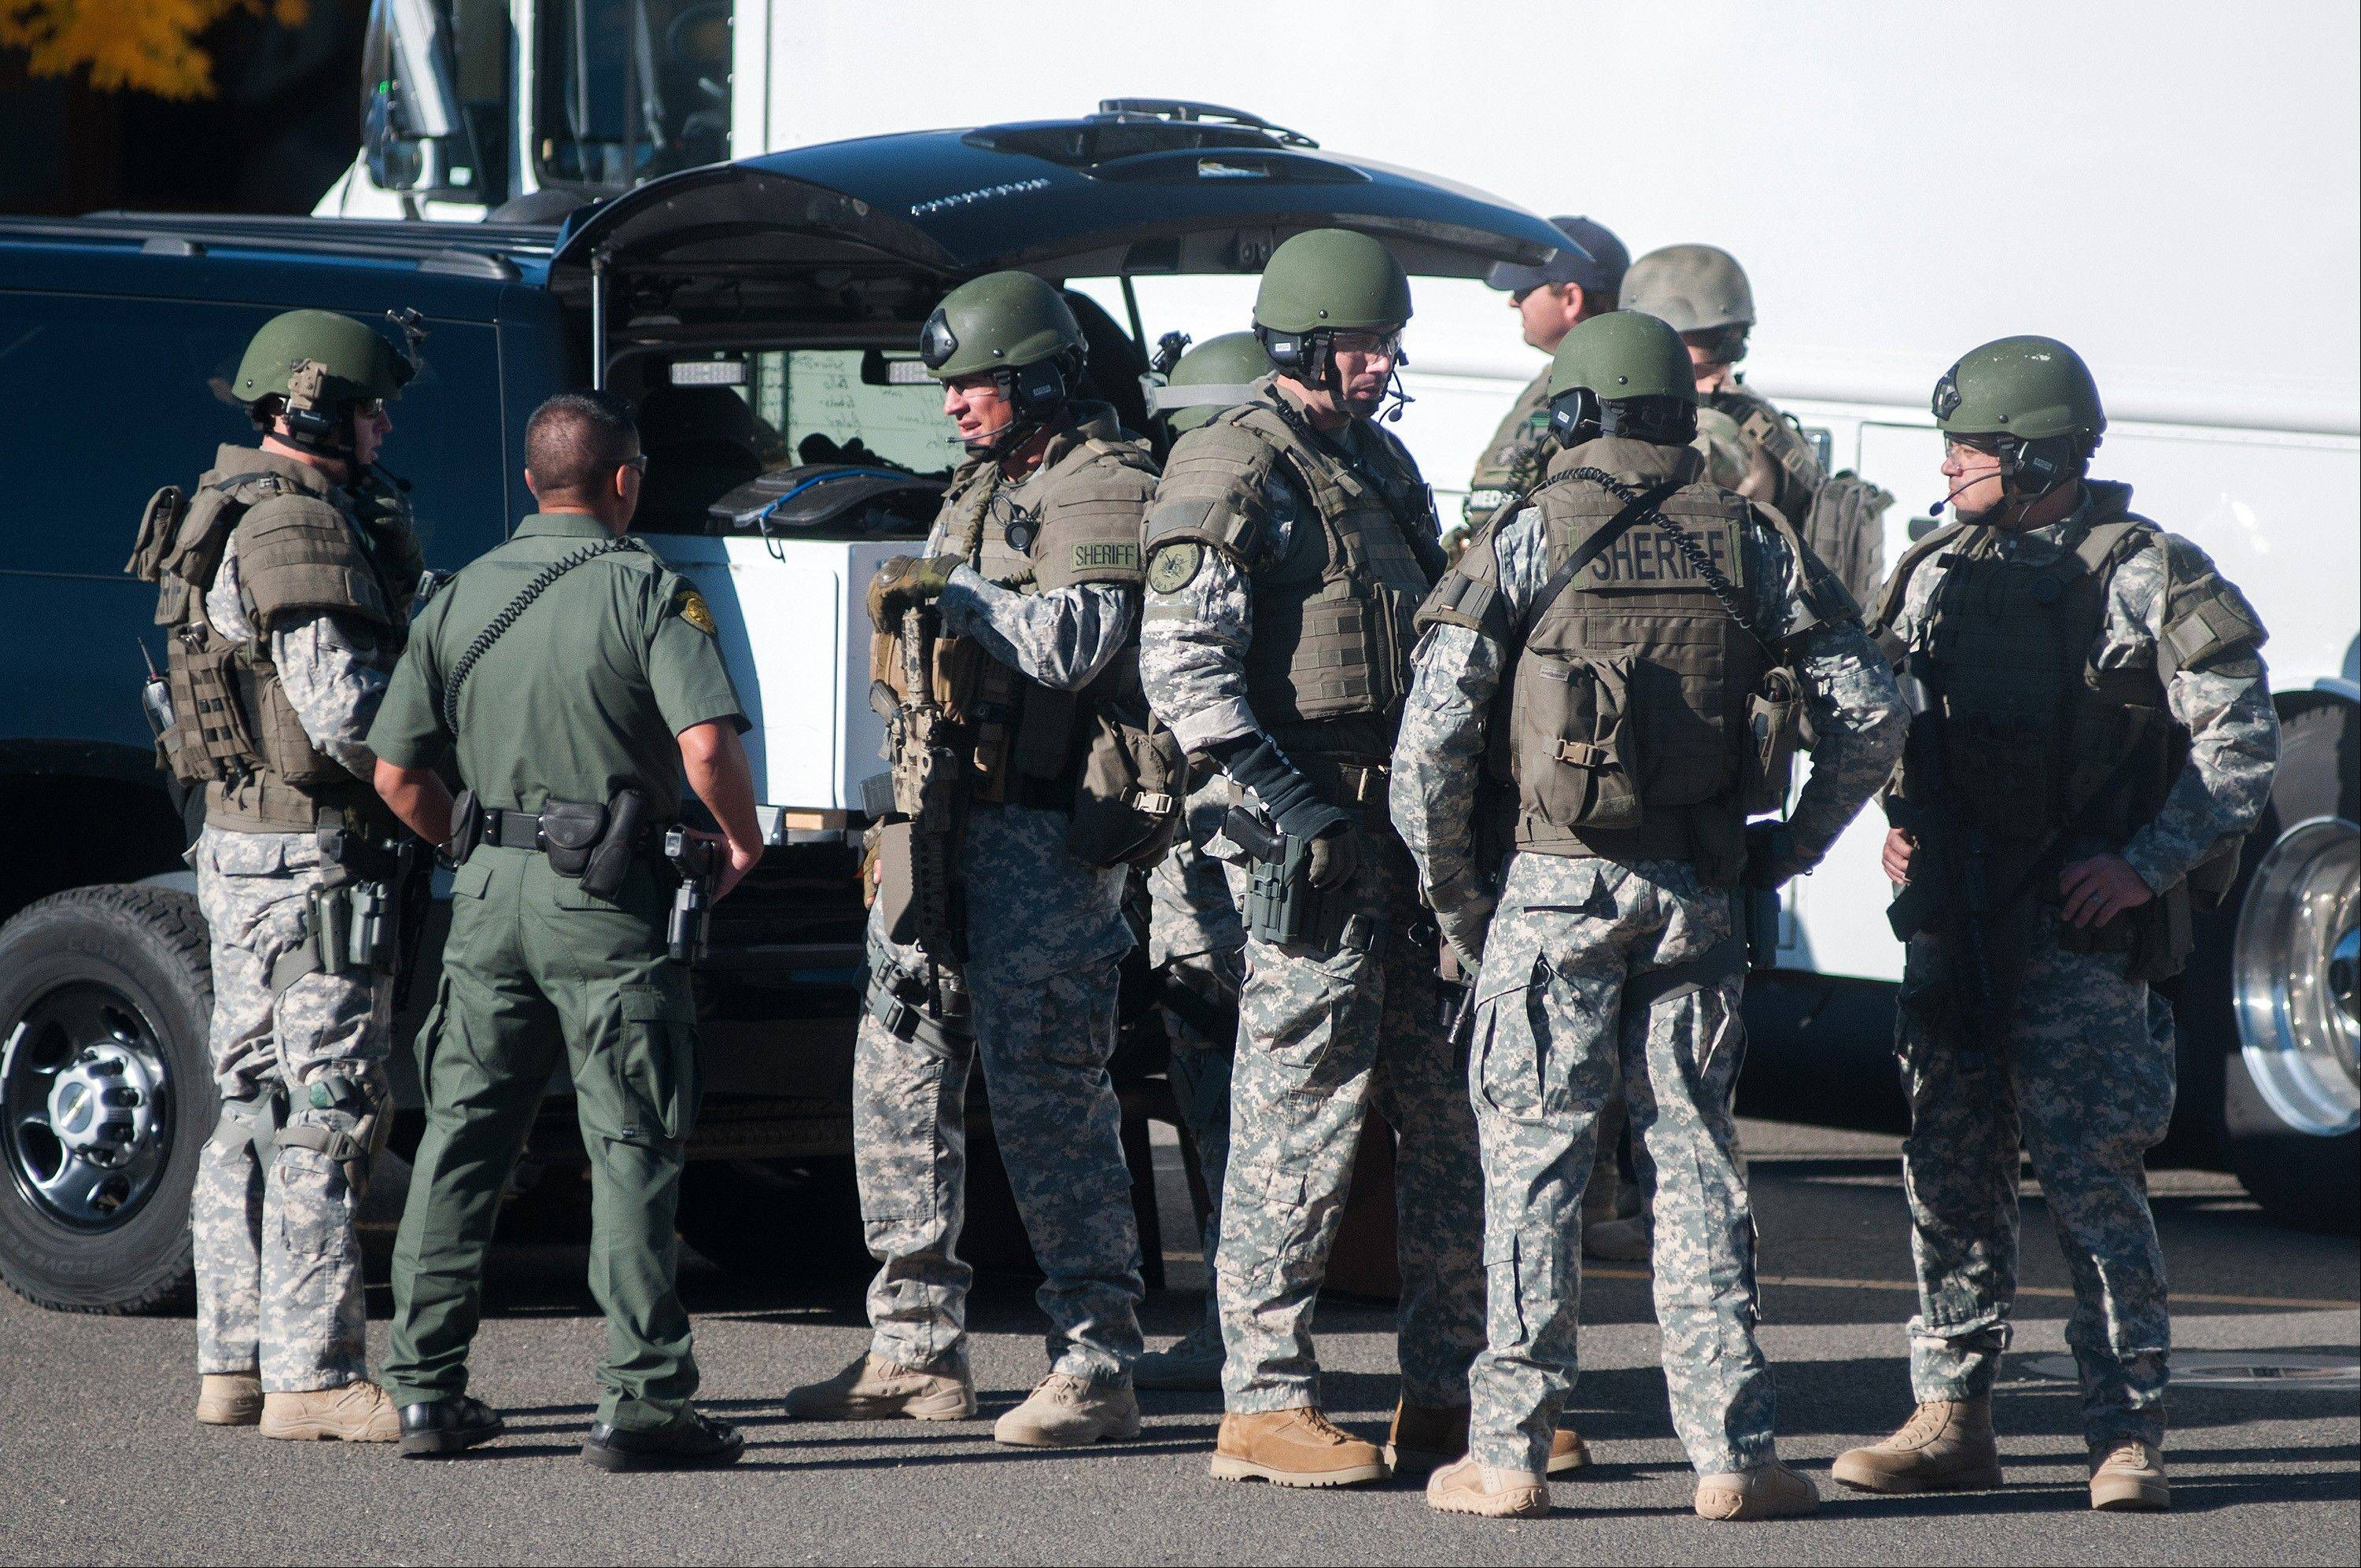 Swat team members secure the scene near Sparks Middle School in Sparks, Nev., after a shooting there on Monday.